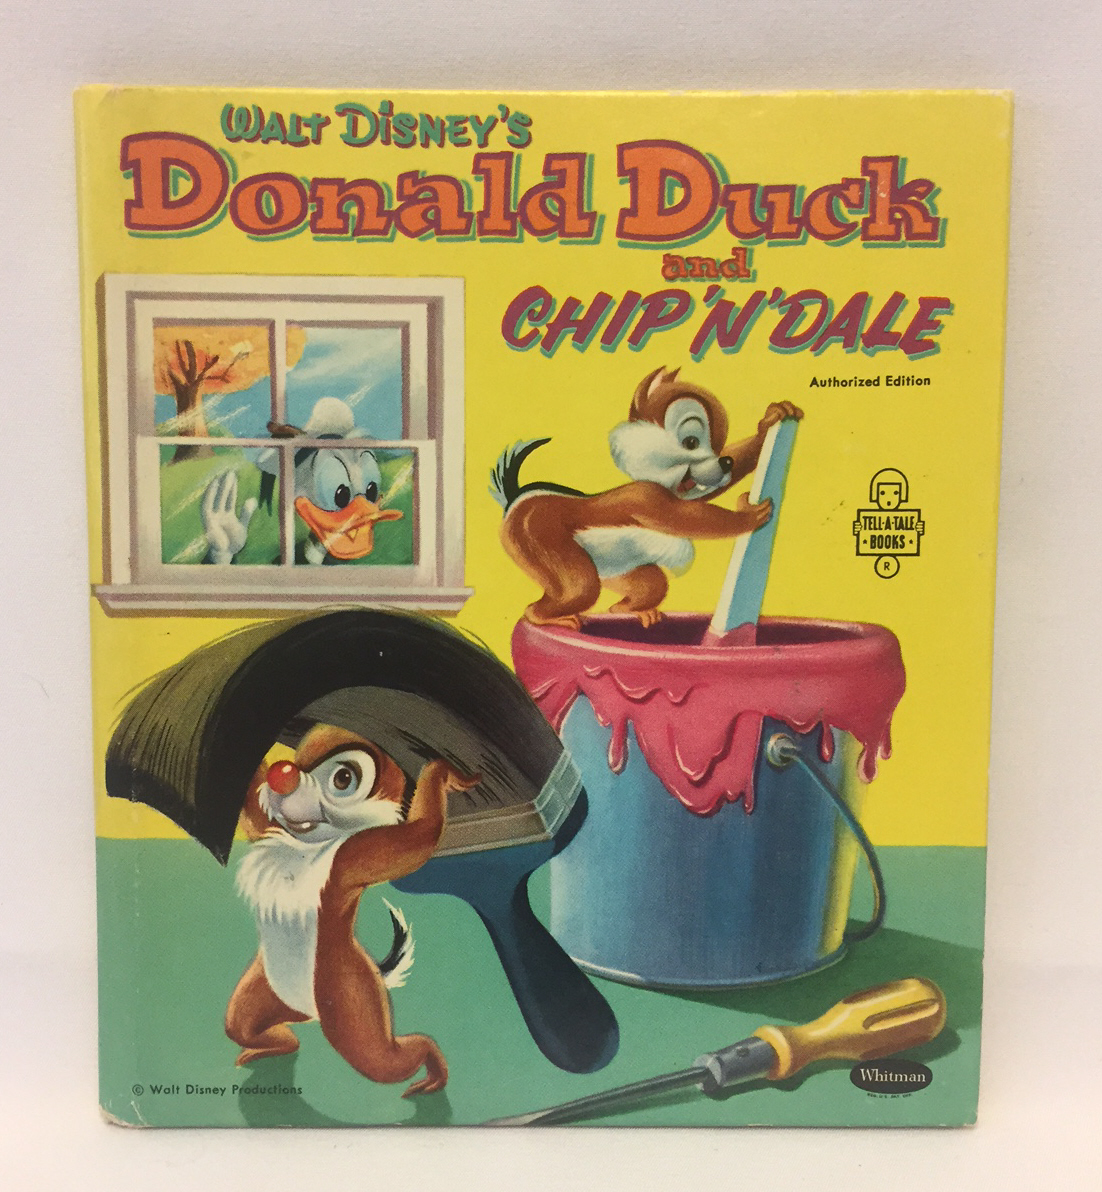 Disney's Donald Duck and Chip N Dale children's book Whitman vintage 1954